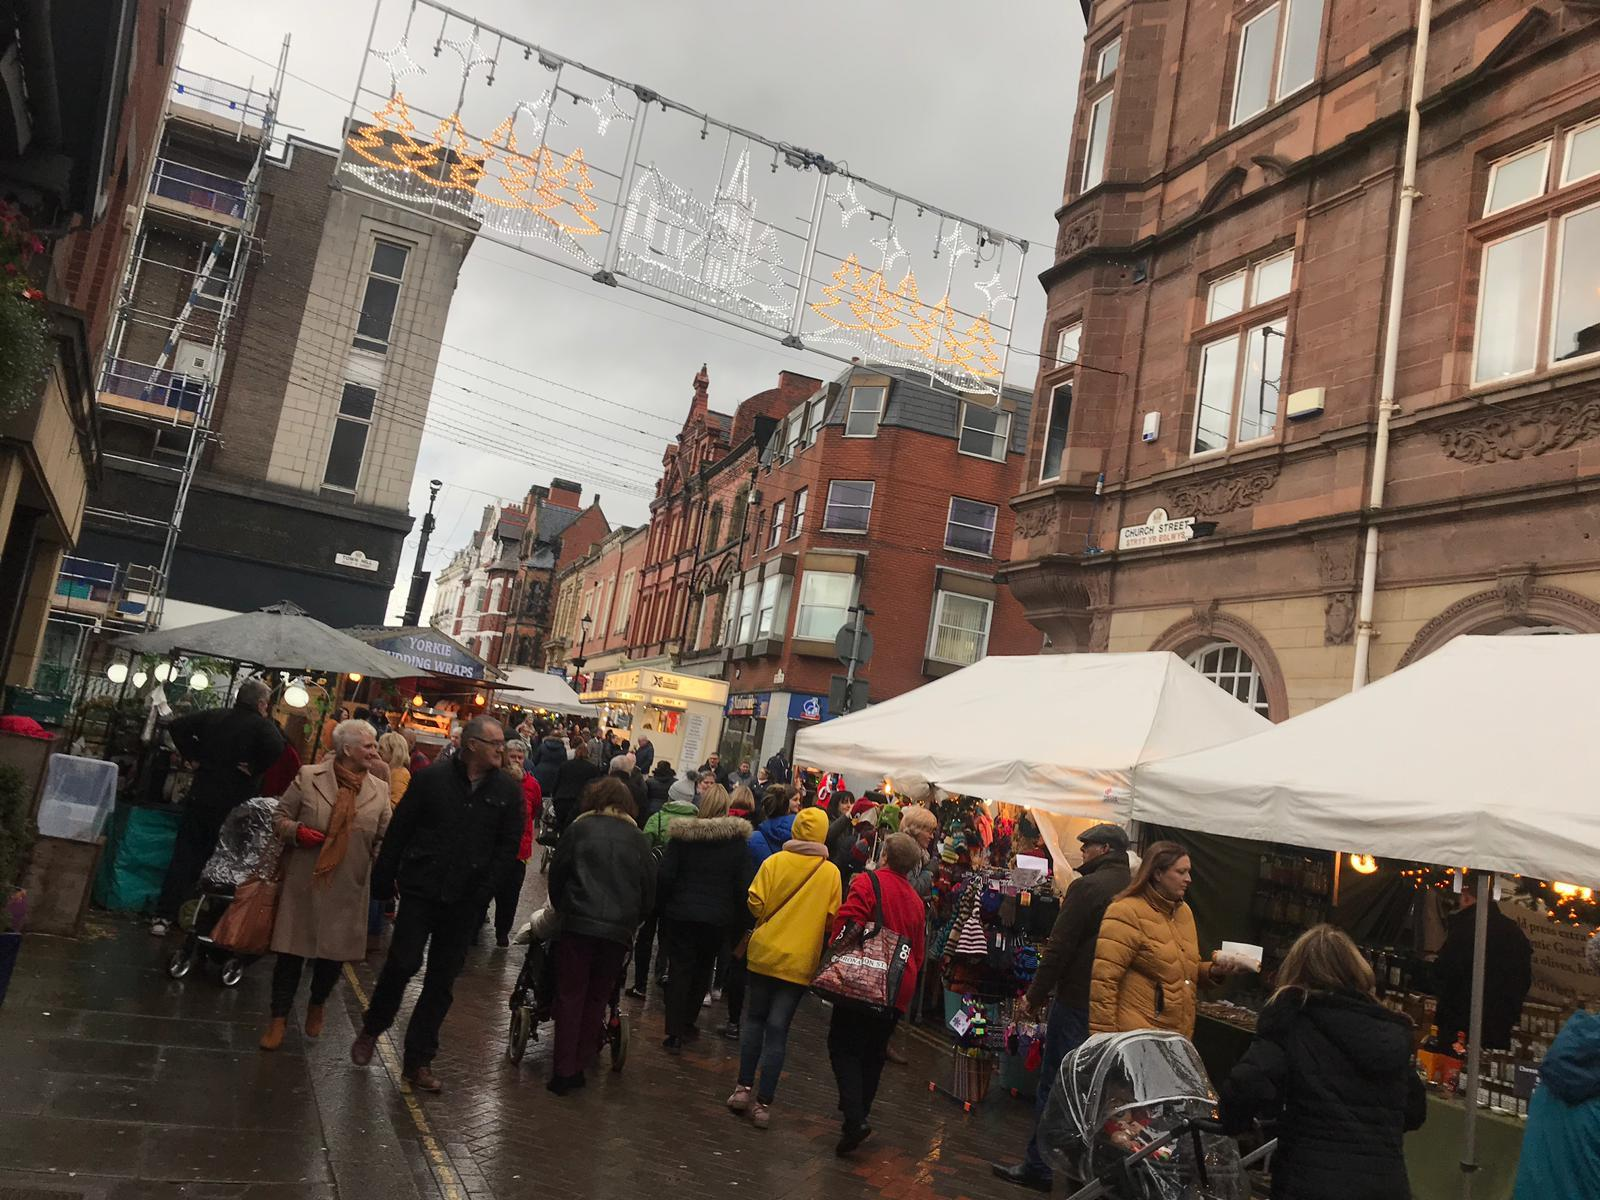 Thousands flock to Wrexham for Victorian Christmas market